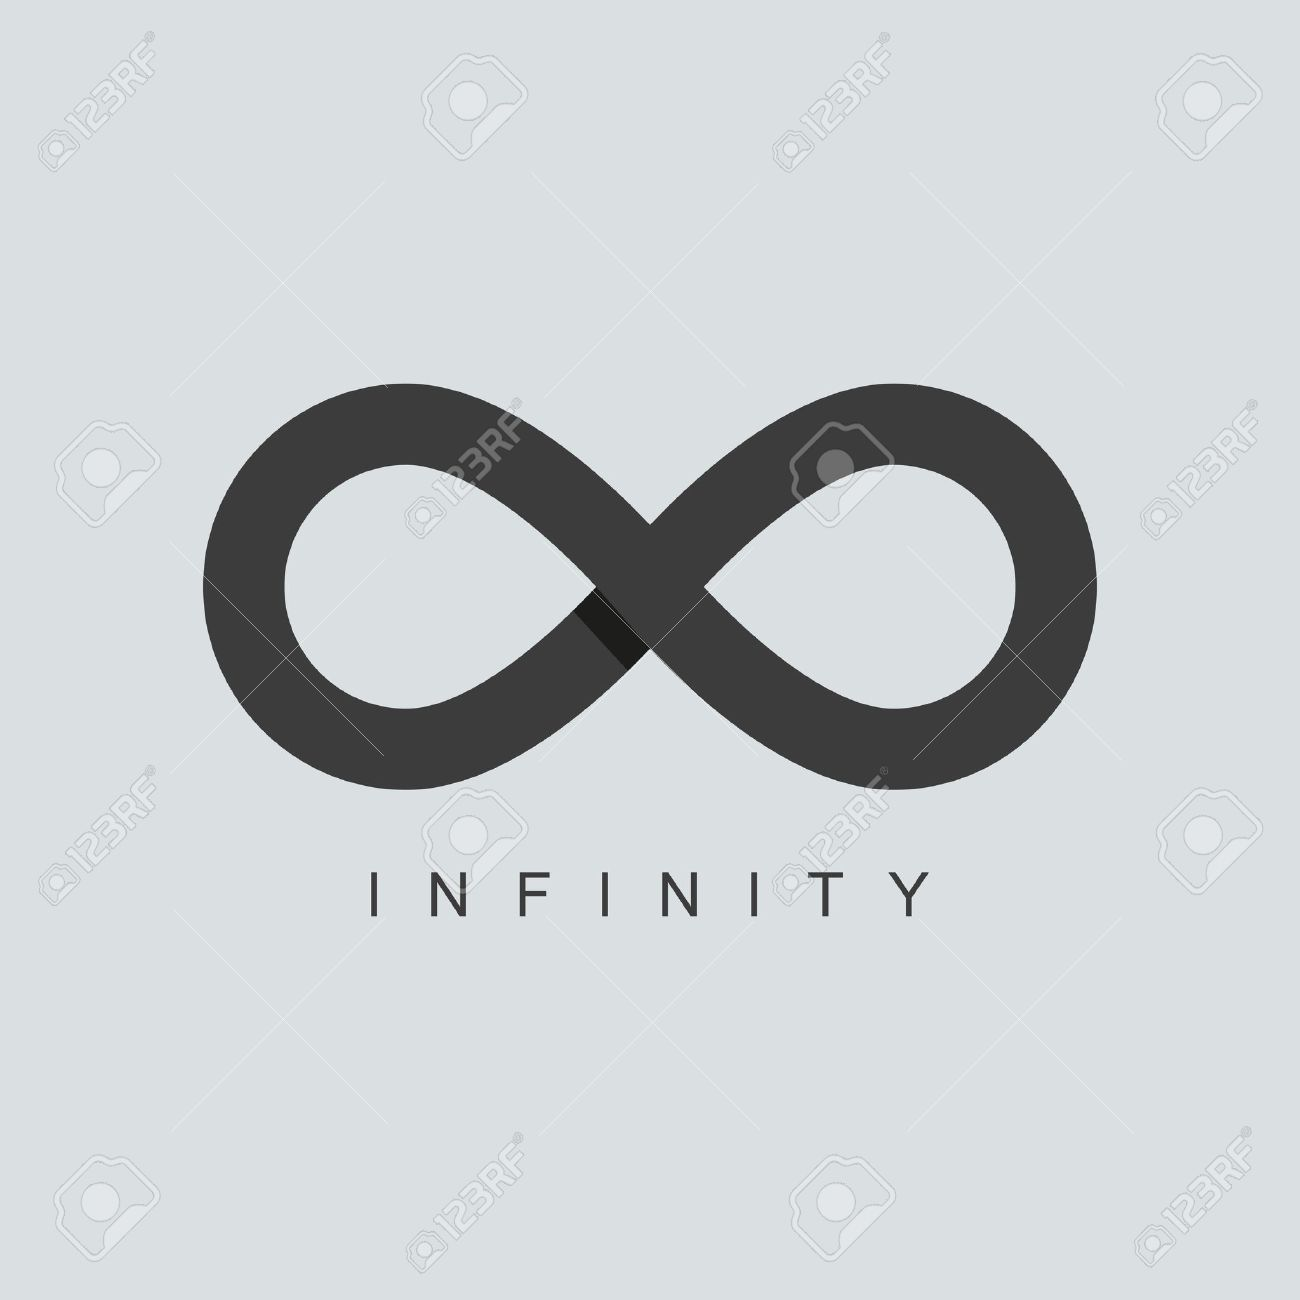 Infinity stock photos royalty free business images infinity symbol or sign icon template isolated on grey background overlapping technique vector biocorpaavc Choice Image